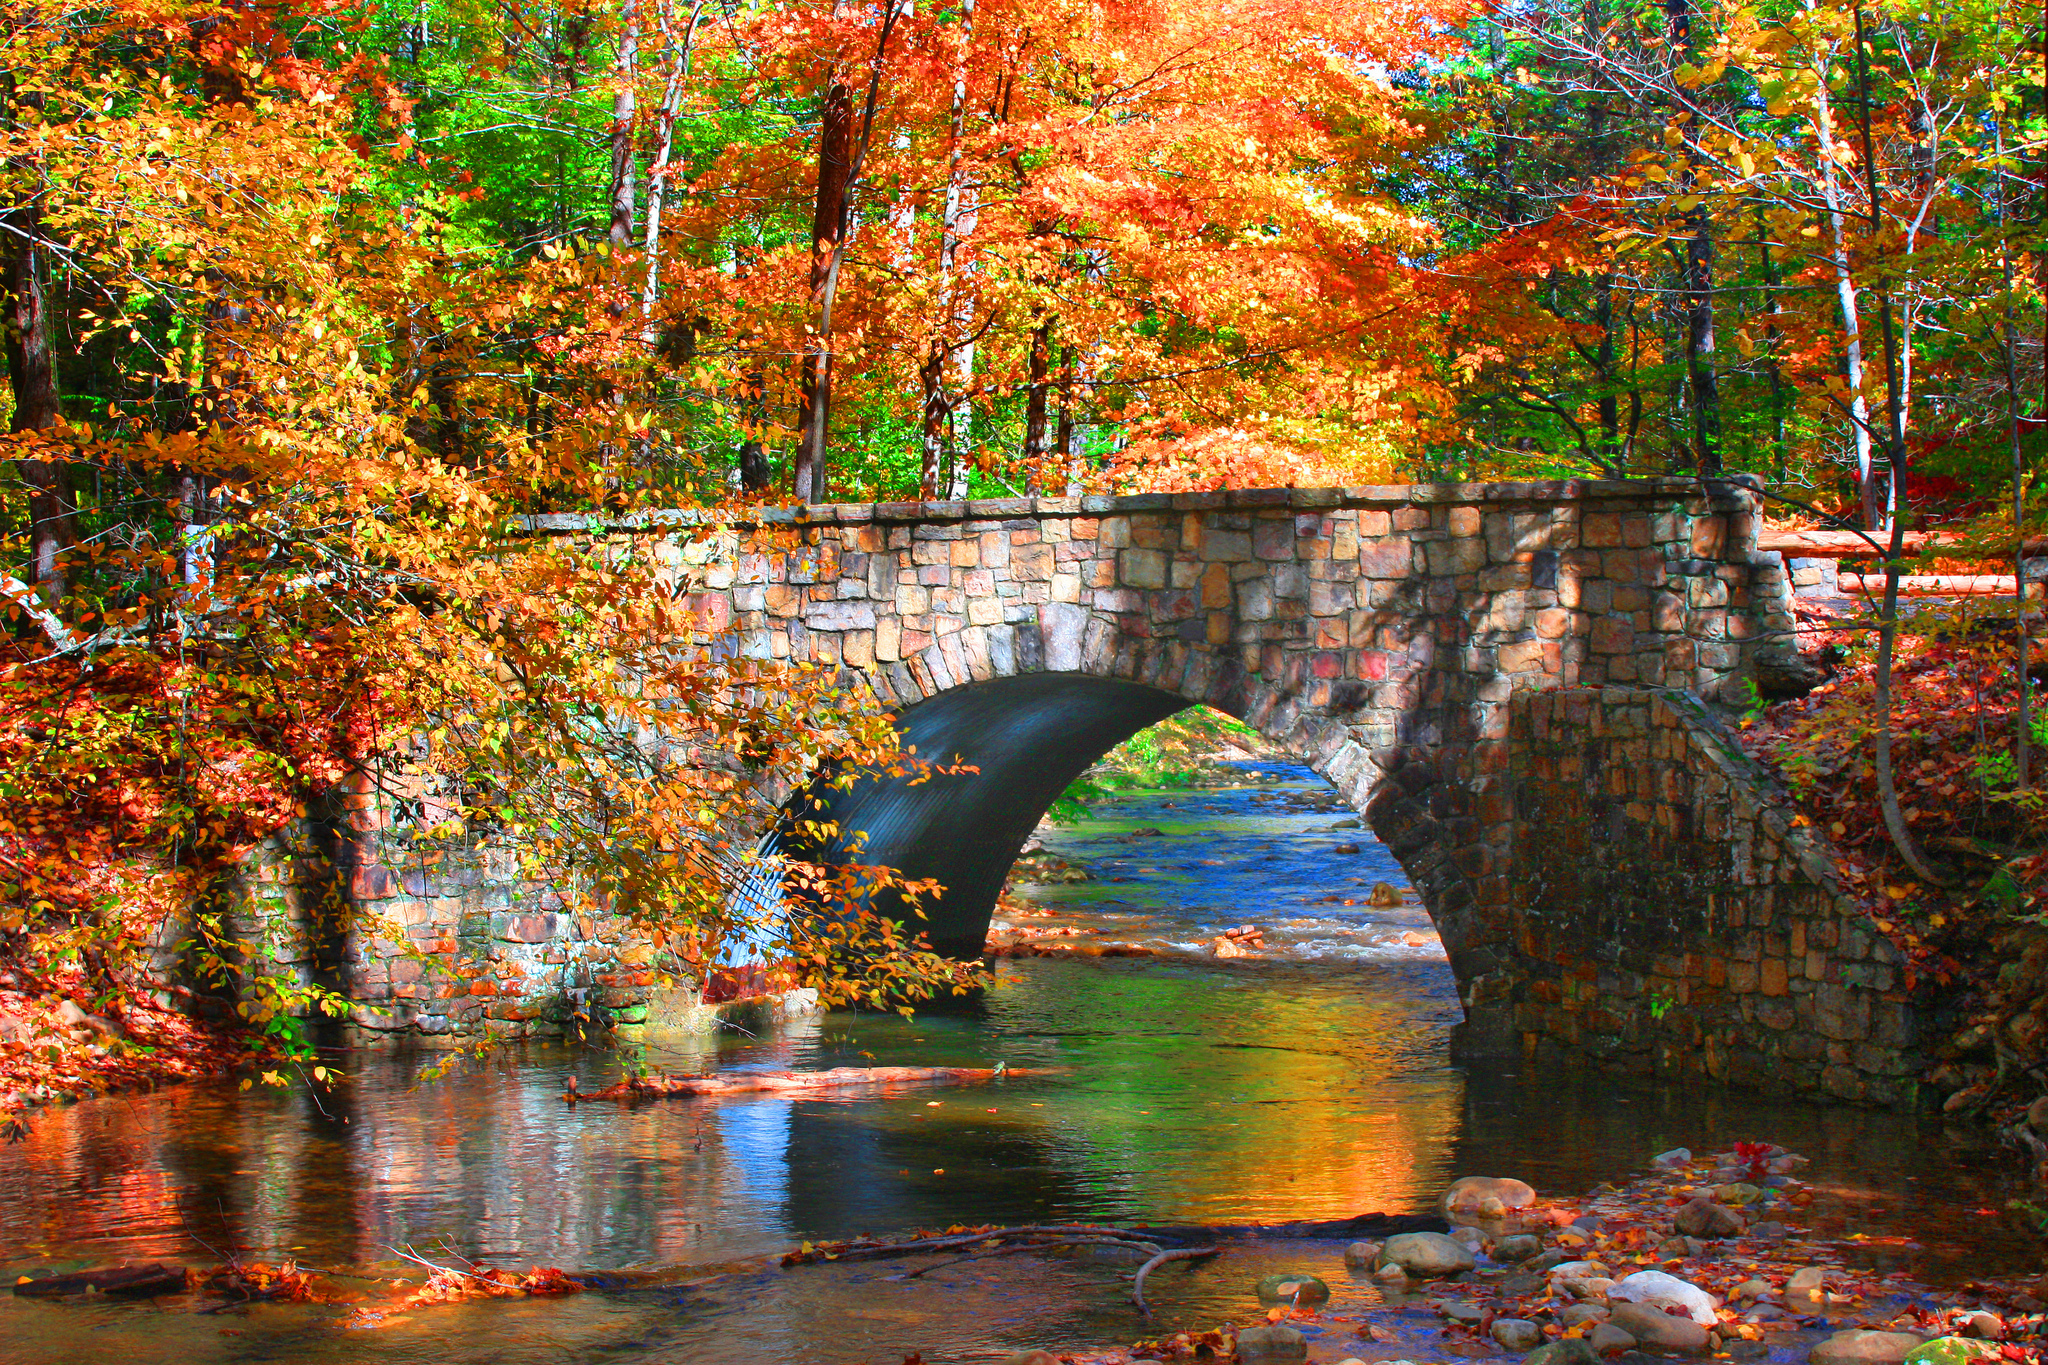 Portland Oregon Fall Had Wallpaper See Stunning Fall Foliage At These 14 Virginia State Parks